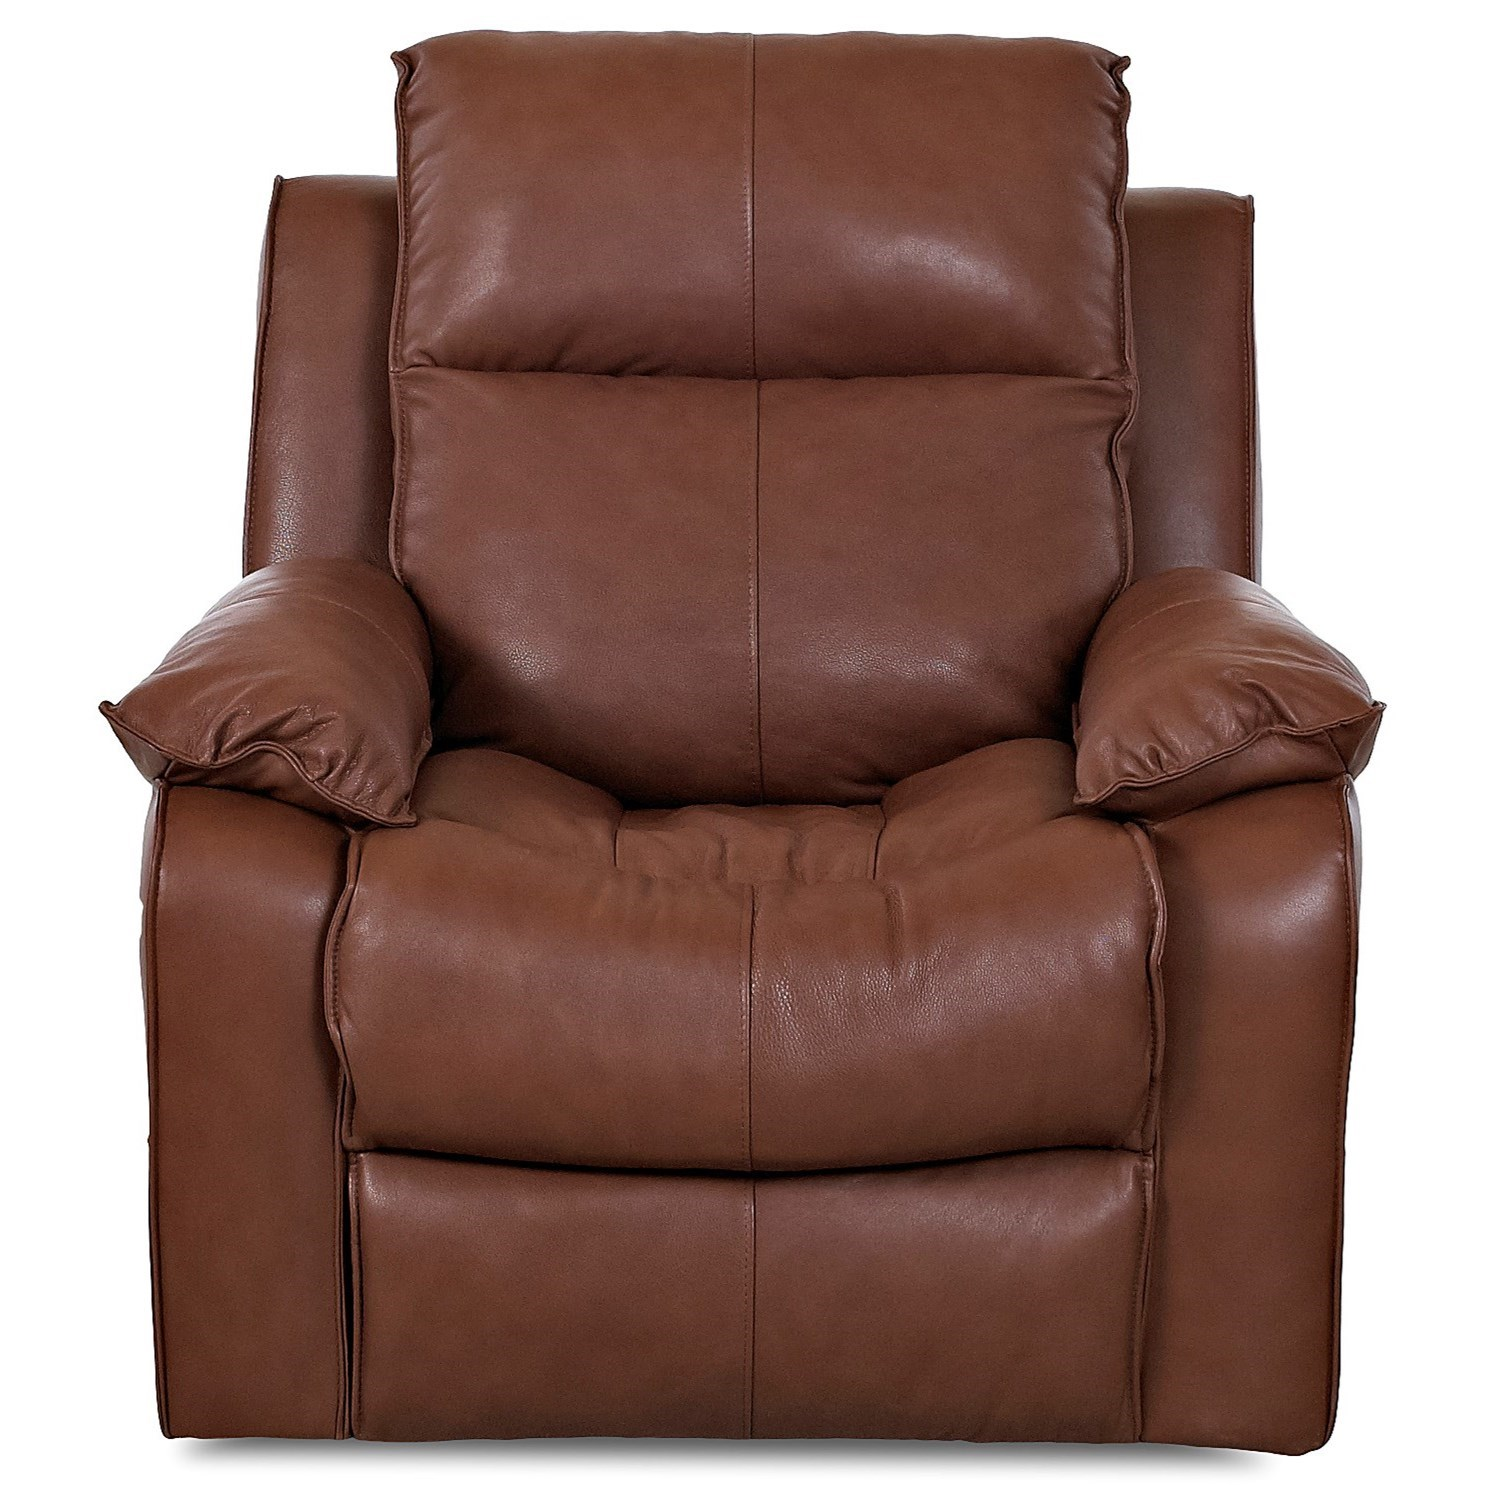 Castaway Casual Swivel Rocking Reclining Chair by Klaussner at Johnny Janosik